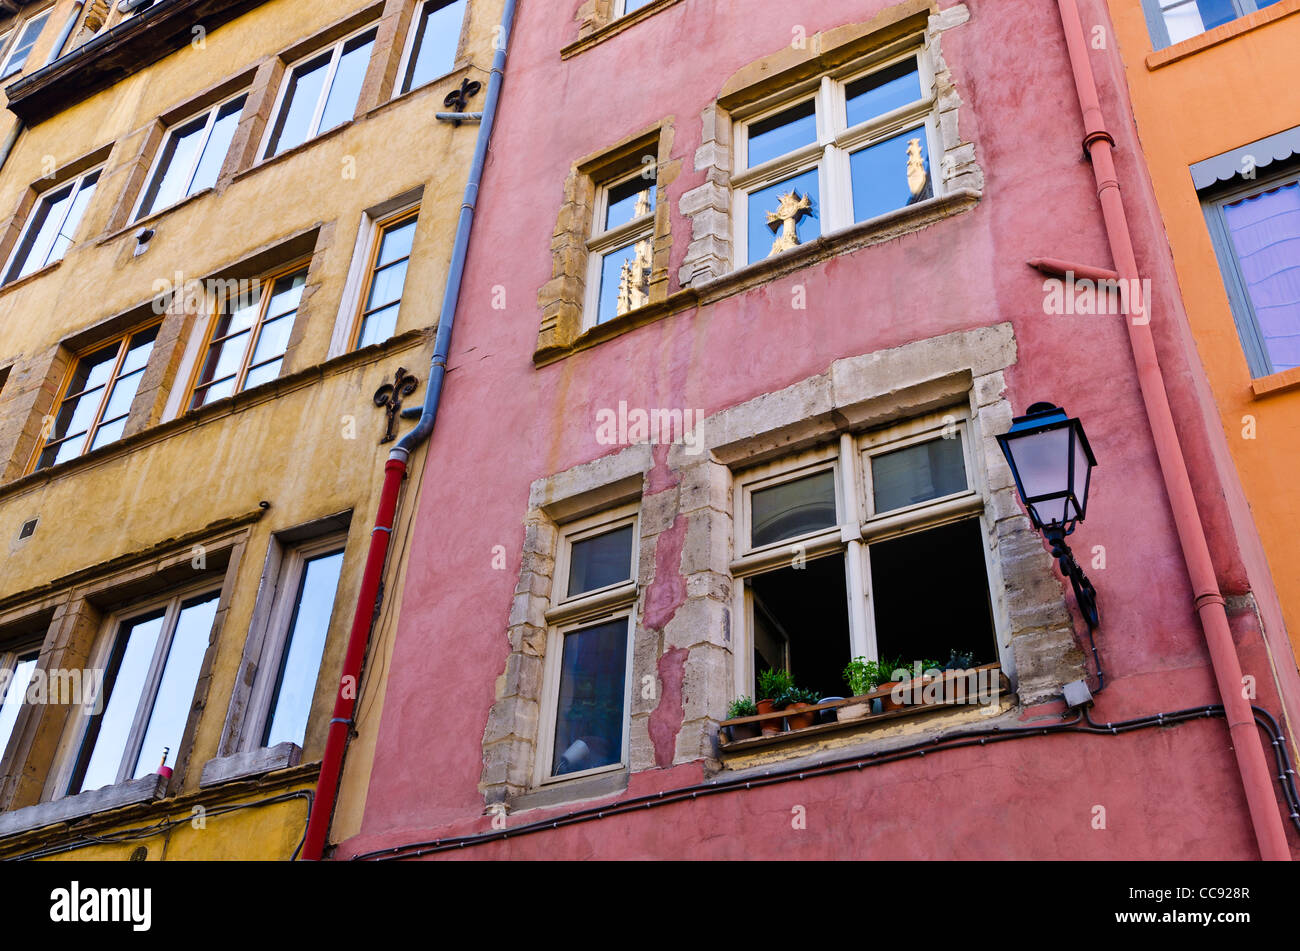 Colorful houses in old town Vieux Lyon, France (UNESCO World Heritage Site) Stock Photo